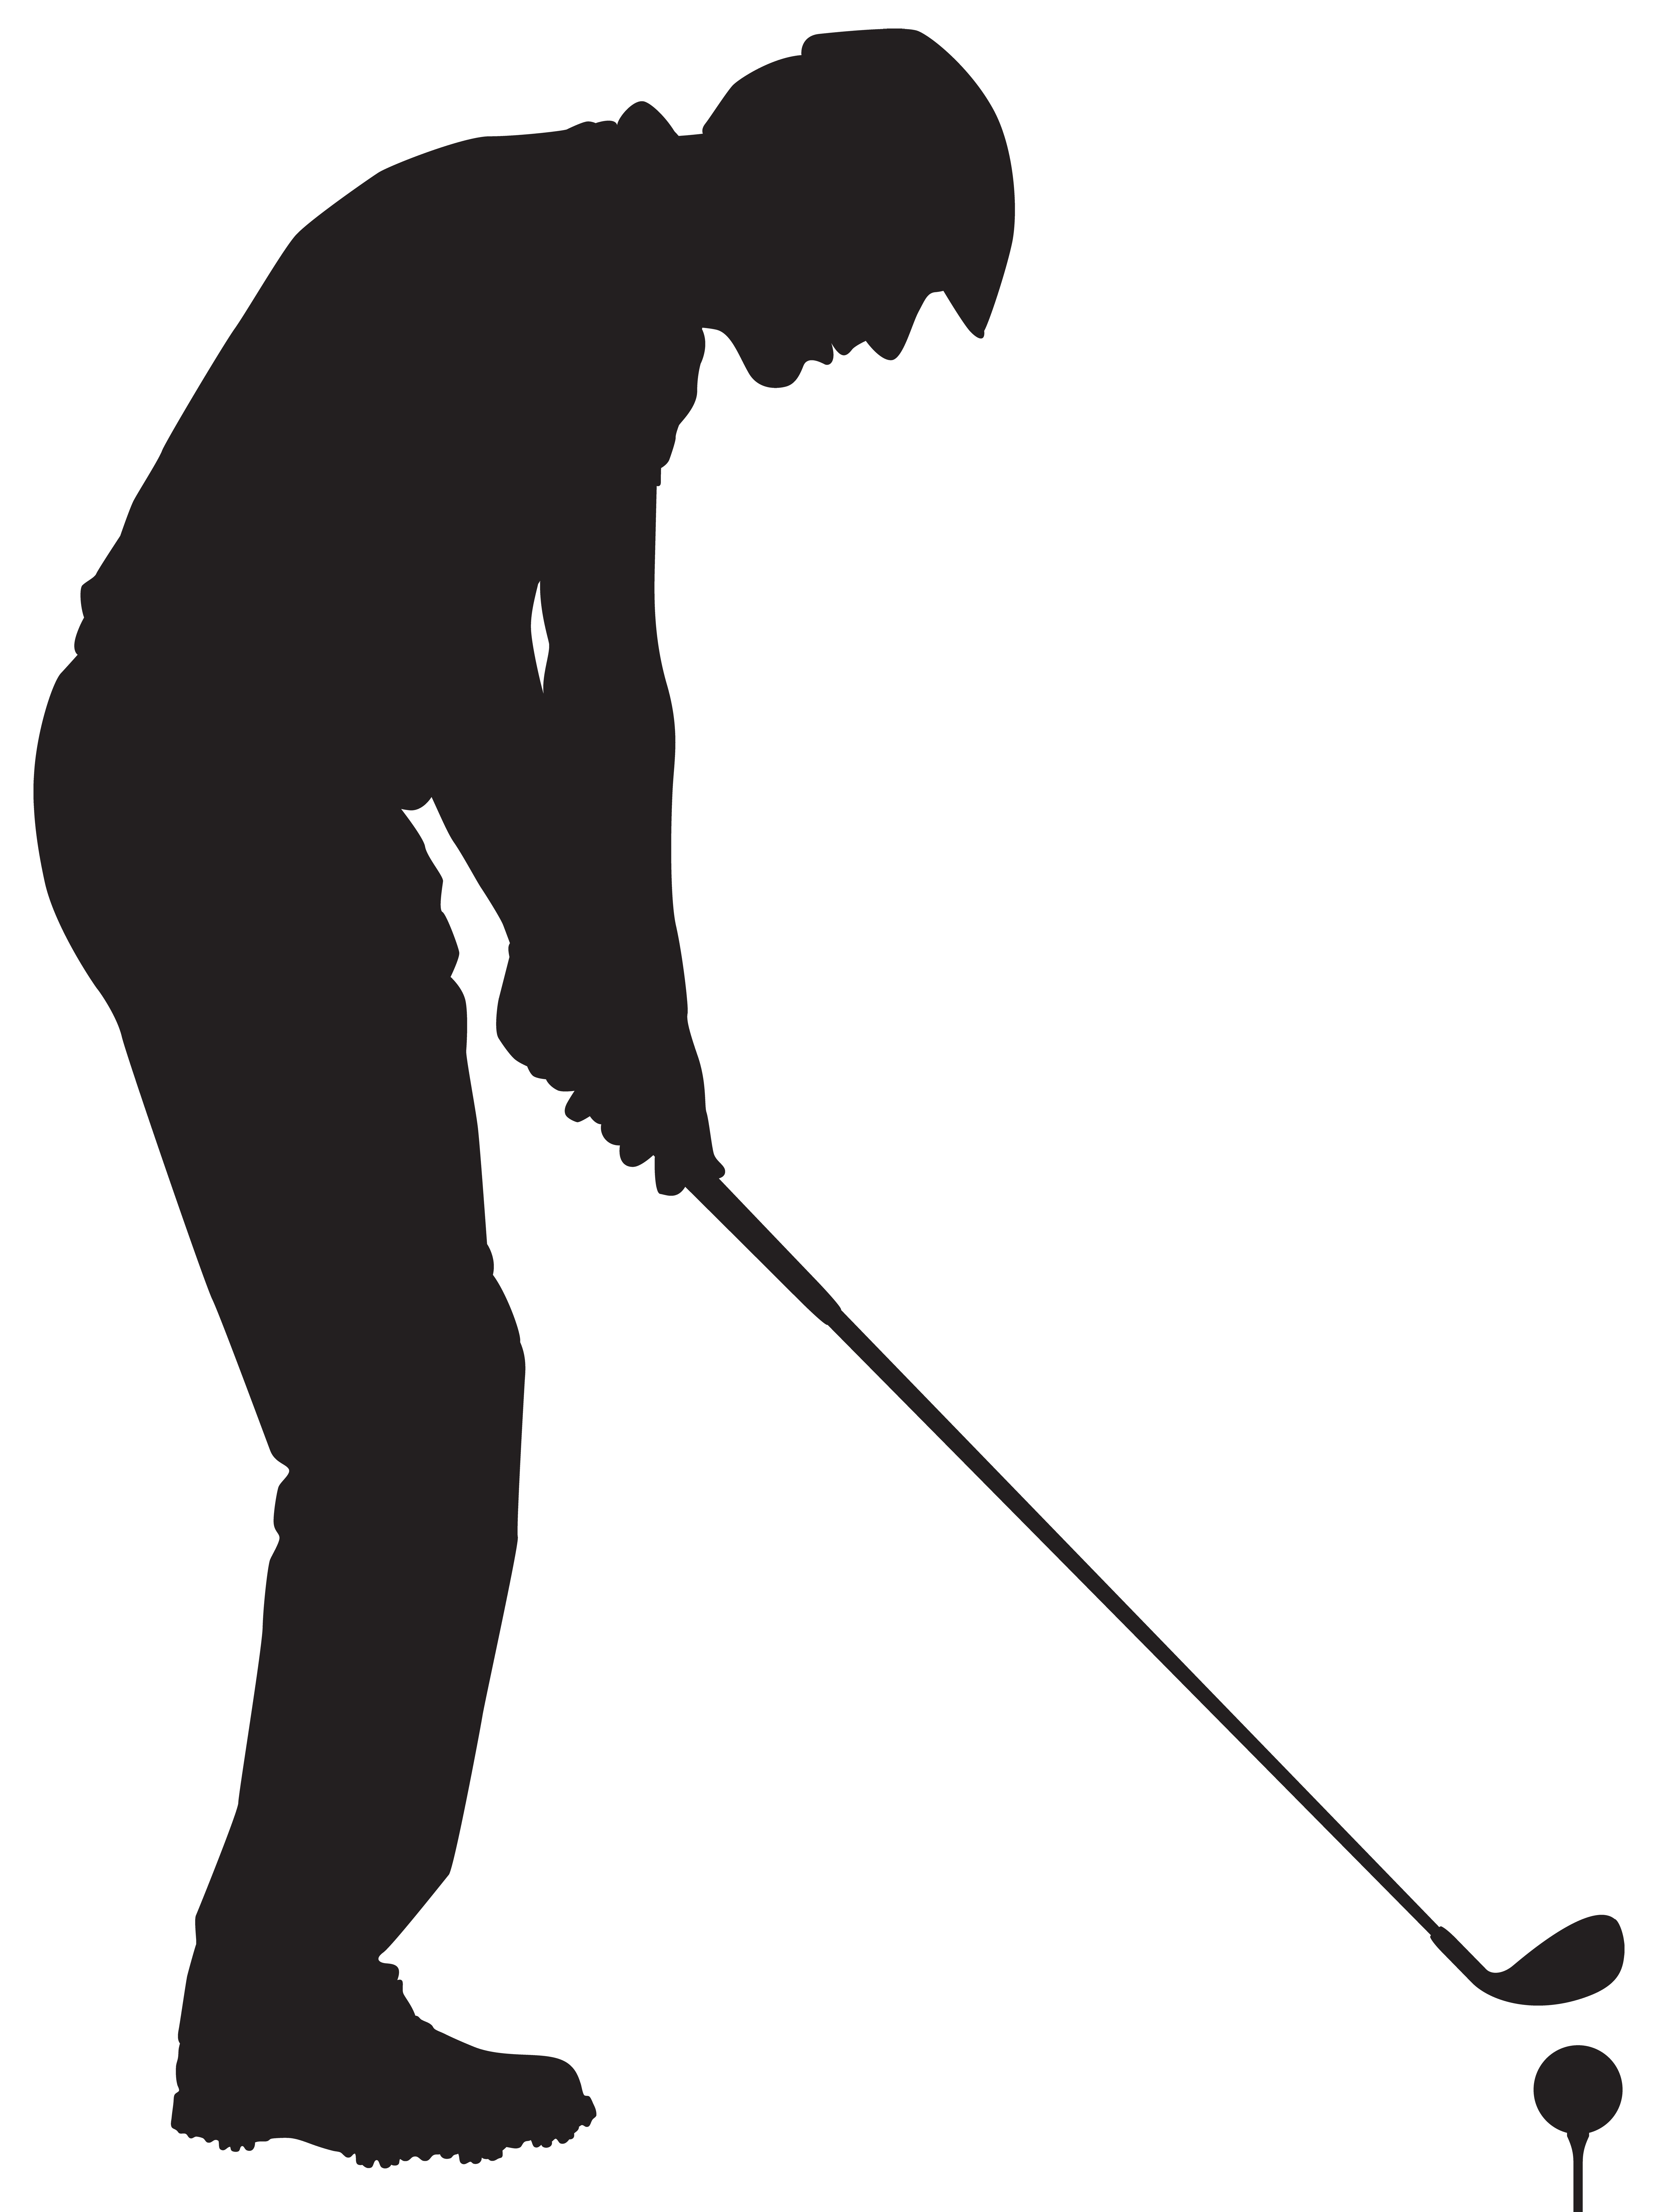 Man playing golf silhouette. Golfer clipart male golfer